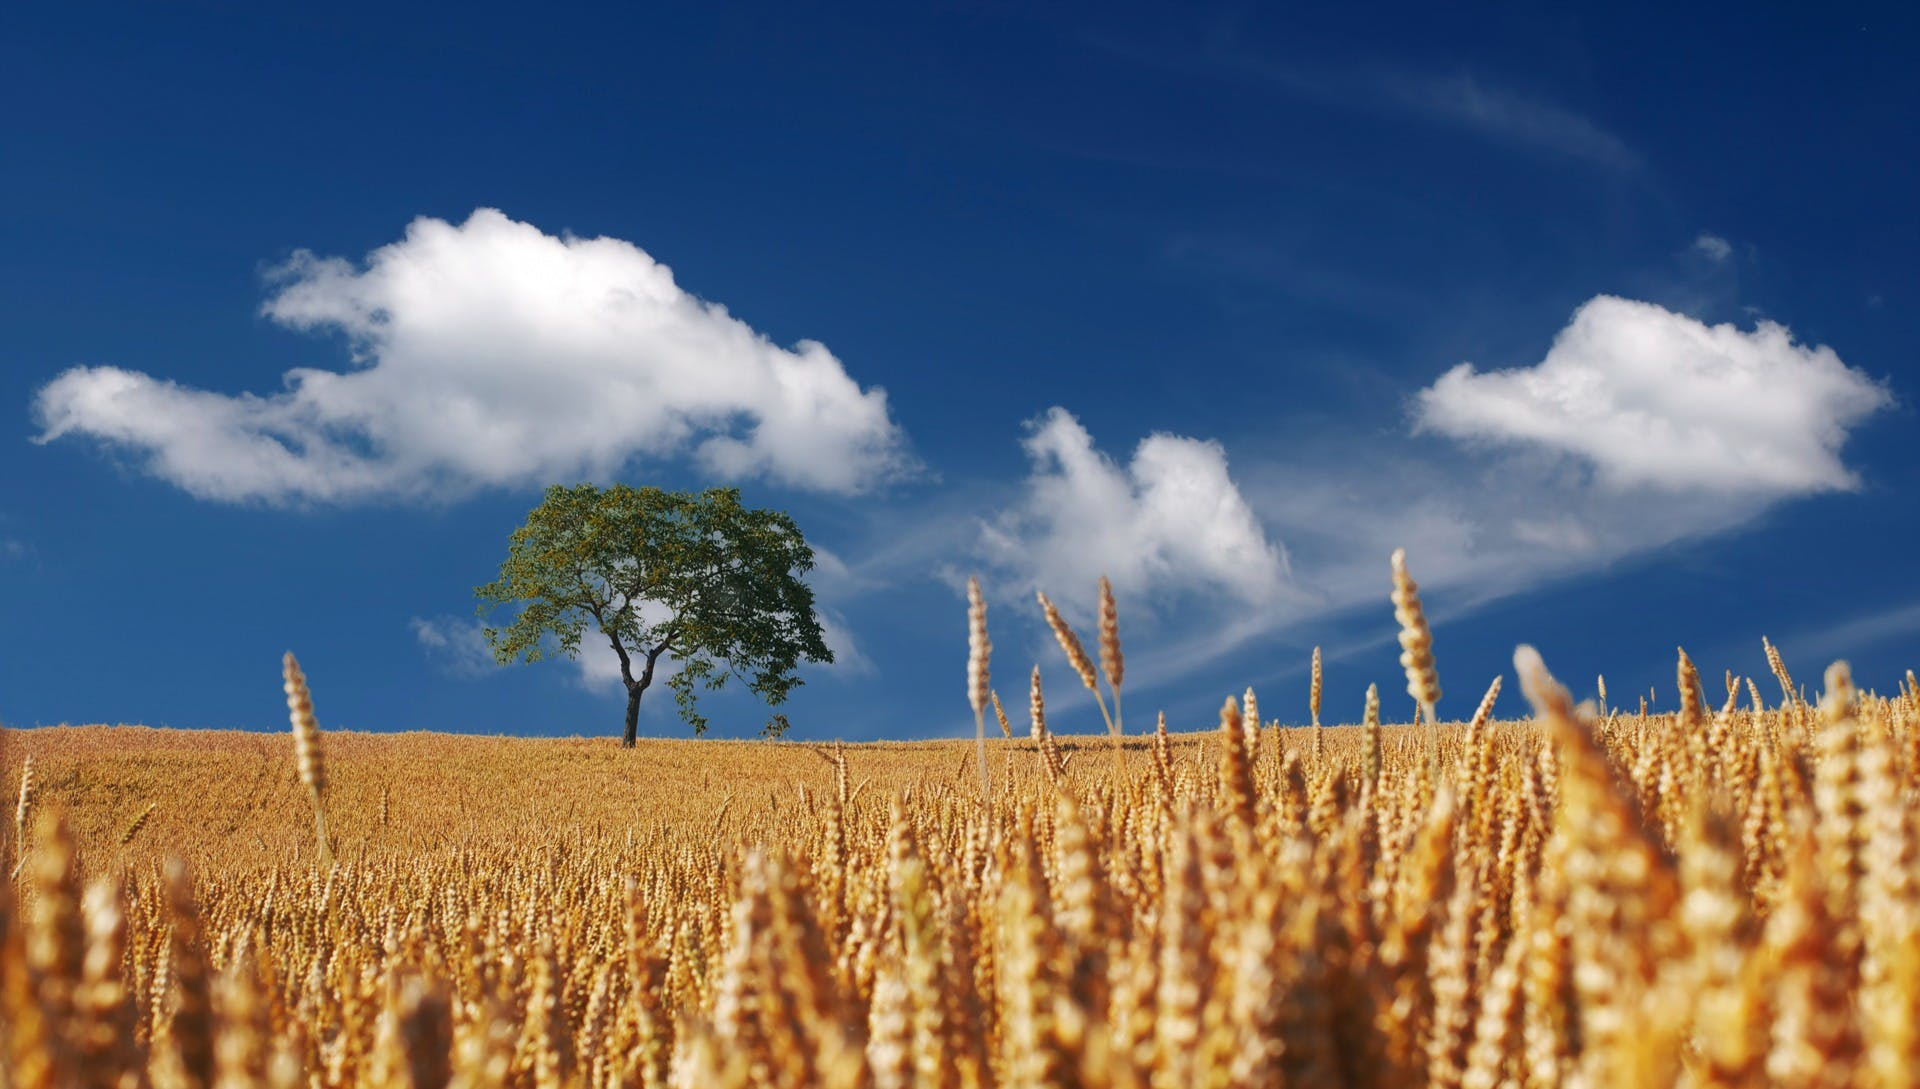 Trees on Yellow Wheat Field Under Blue Sky